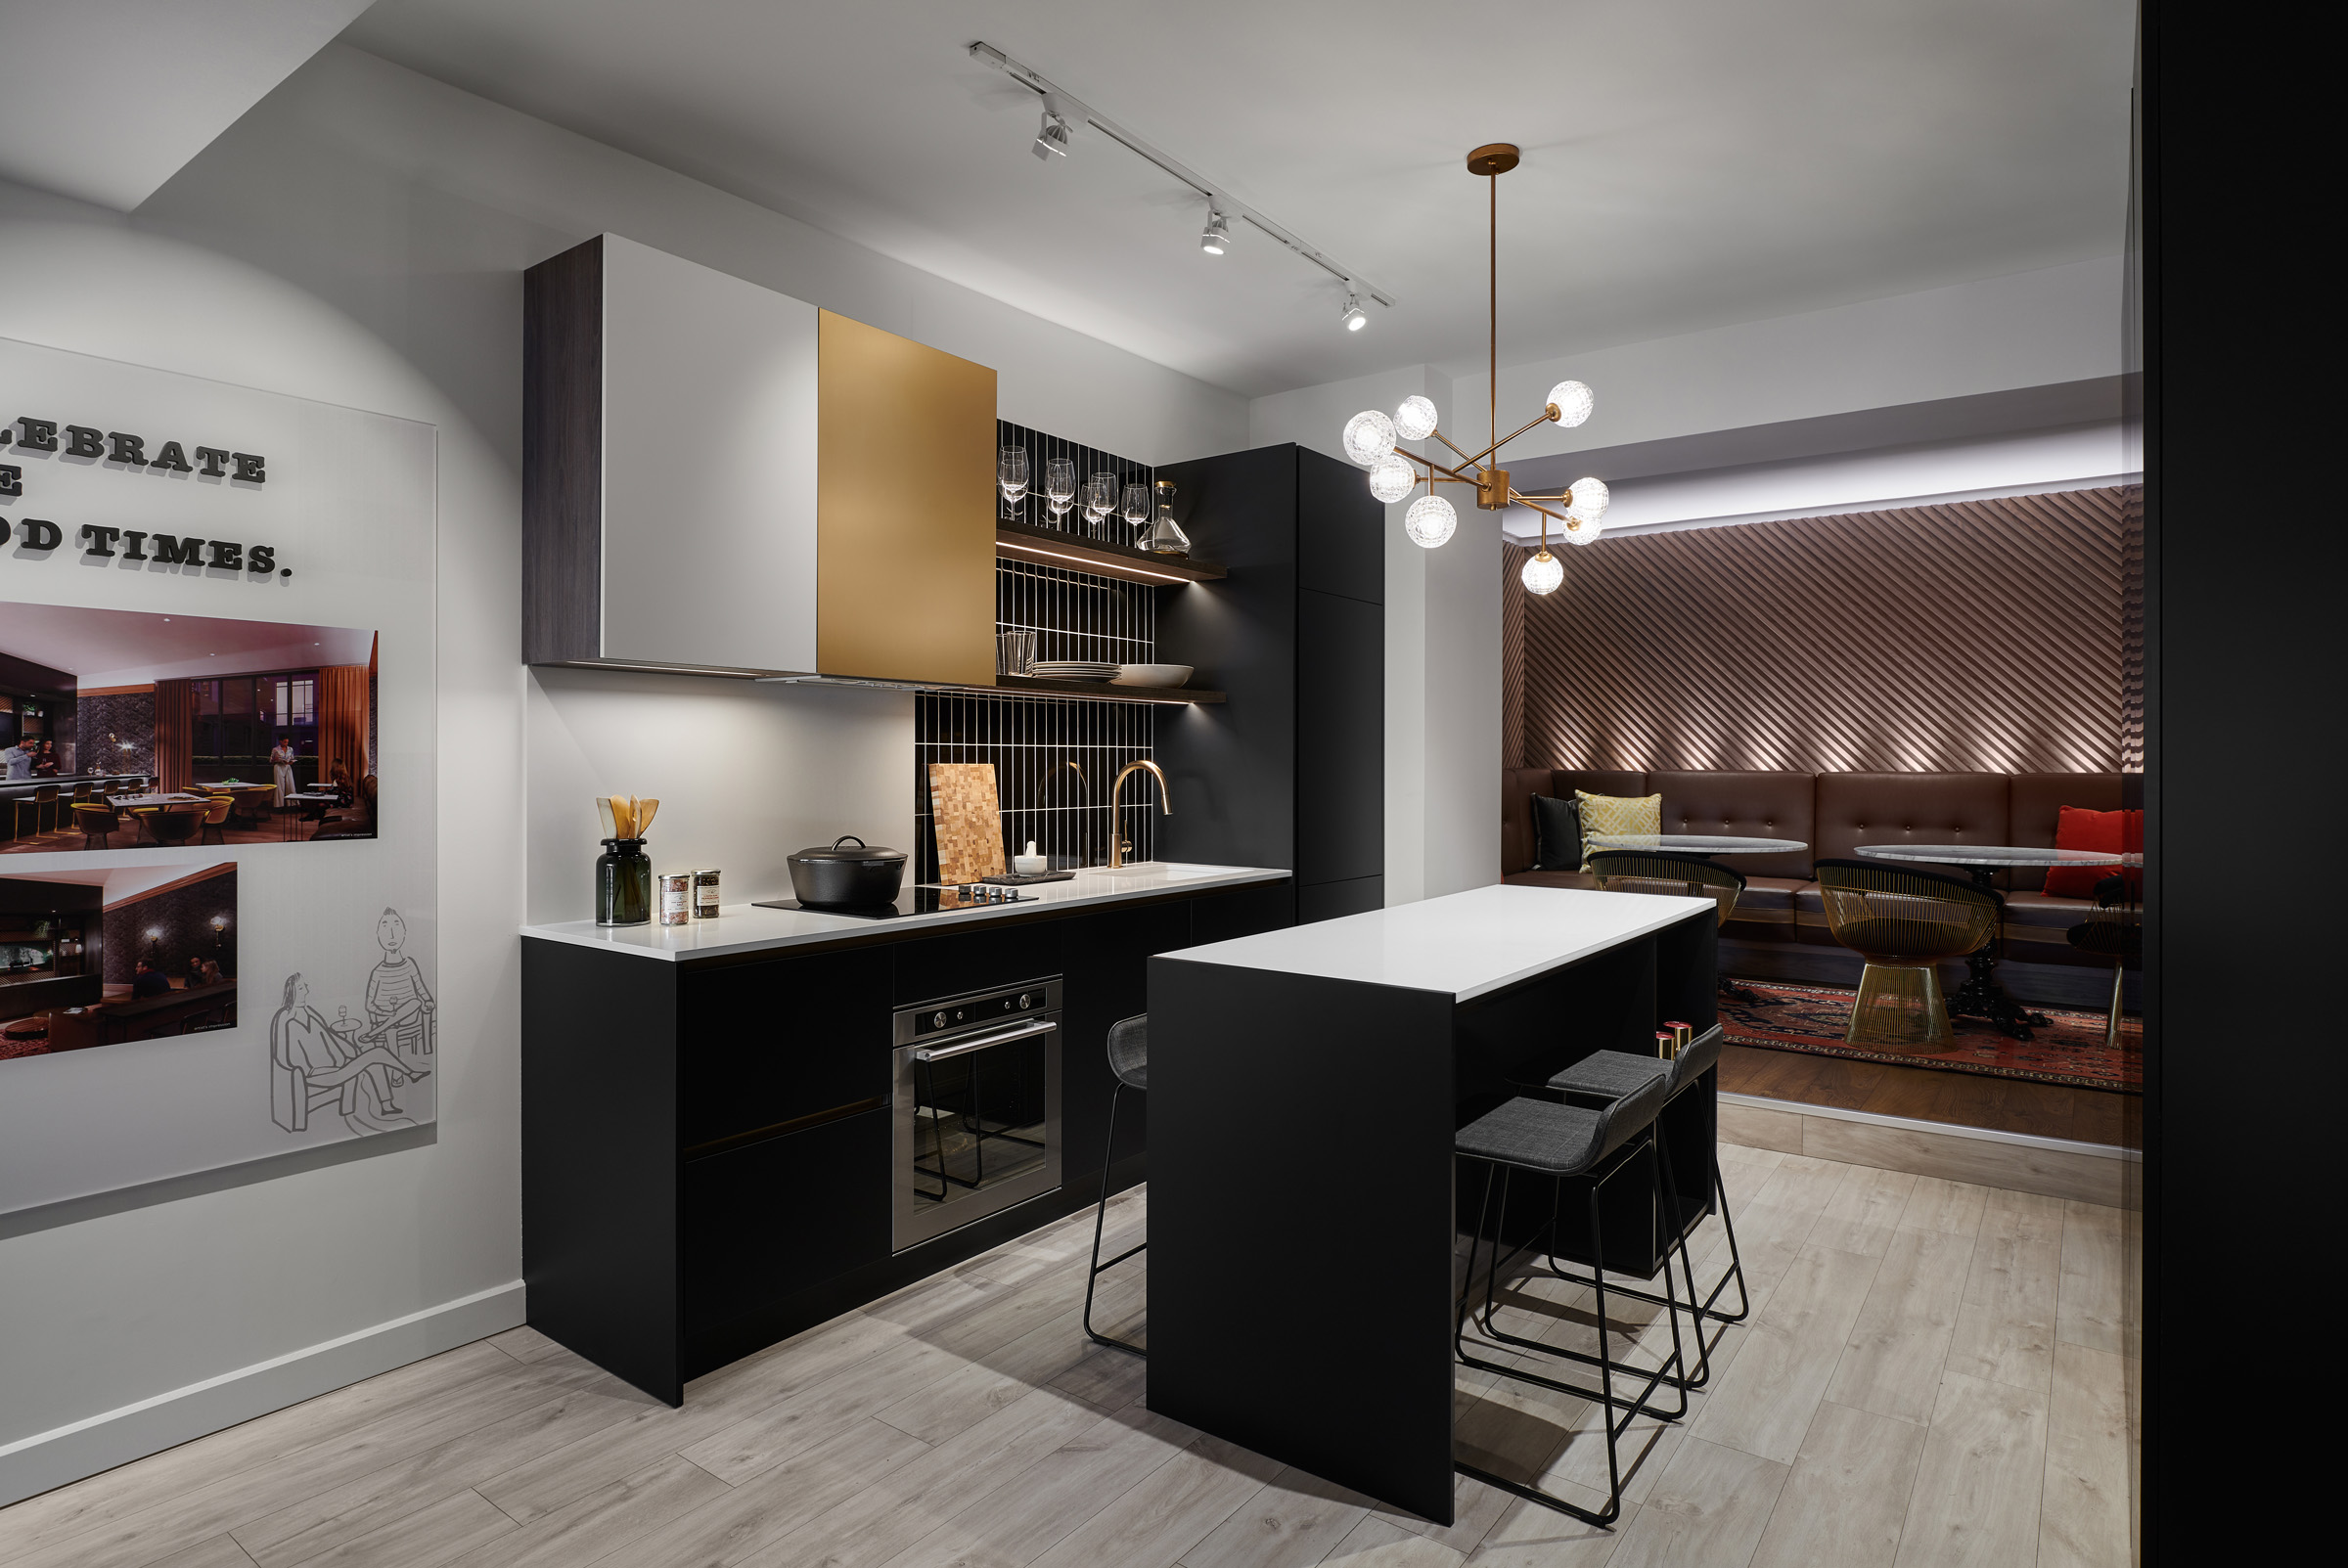 The Poet kitchen with black cabinets, light oak flooring, and gold accents